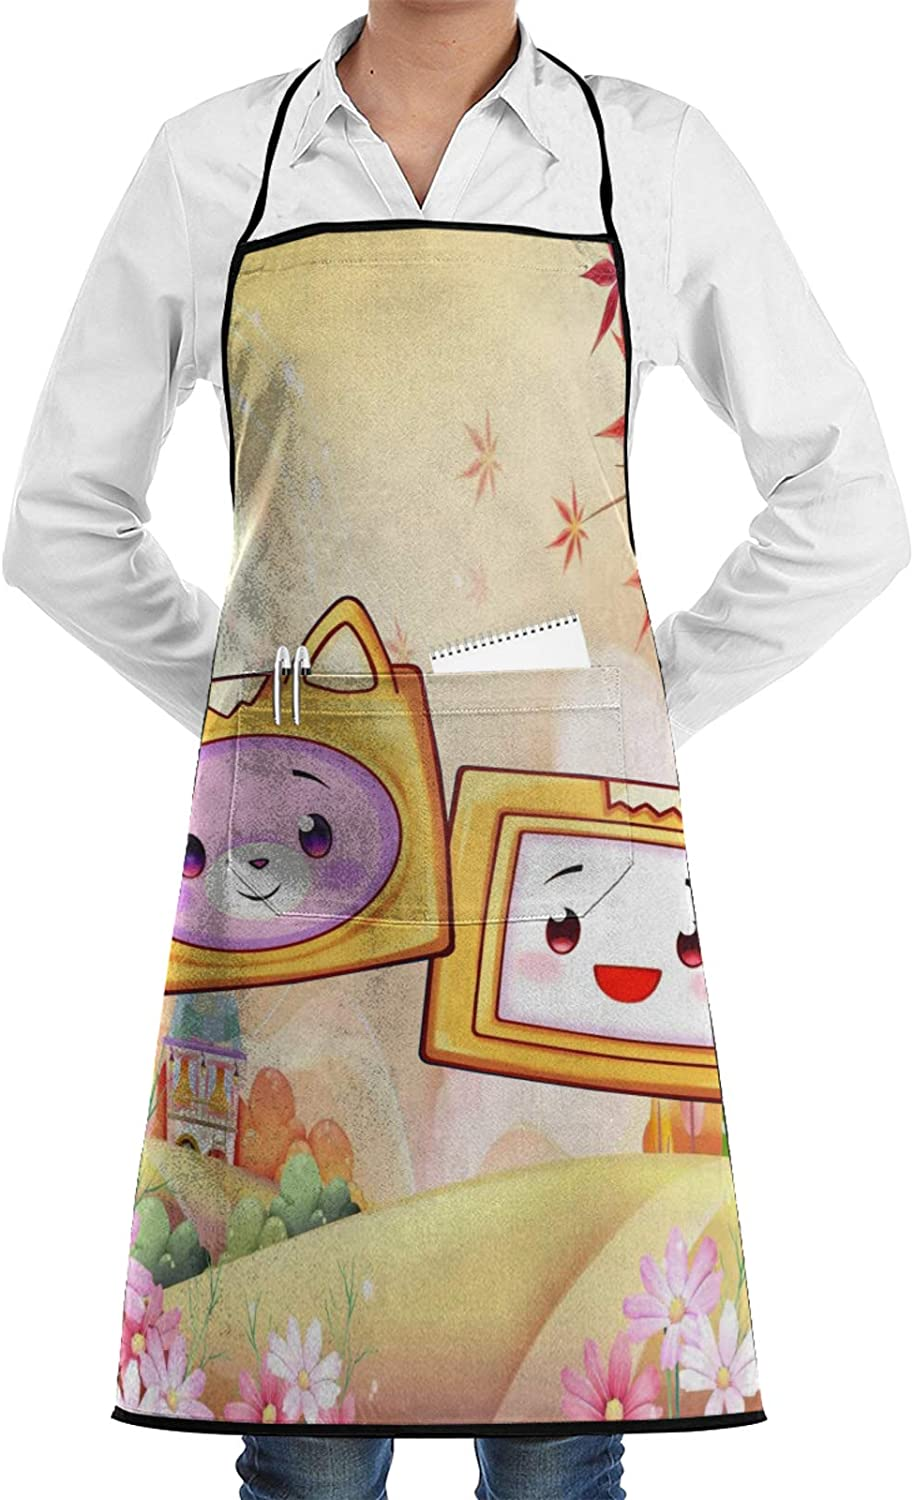 Terry B Dosxyaa Lankybox Merch Lankybox Boxy Adult Funny Apron Kitchen Apron with Pockets Waterdrop Resistant Bib with Pockets Adjustable Universal for BBQ, Baking, Painting, Cooking